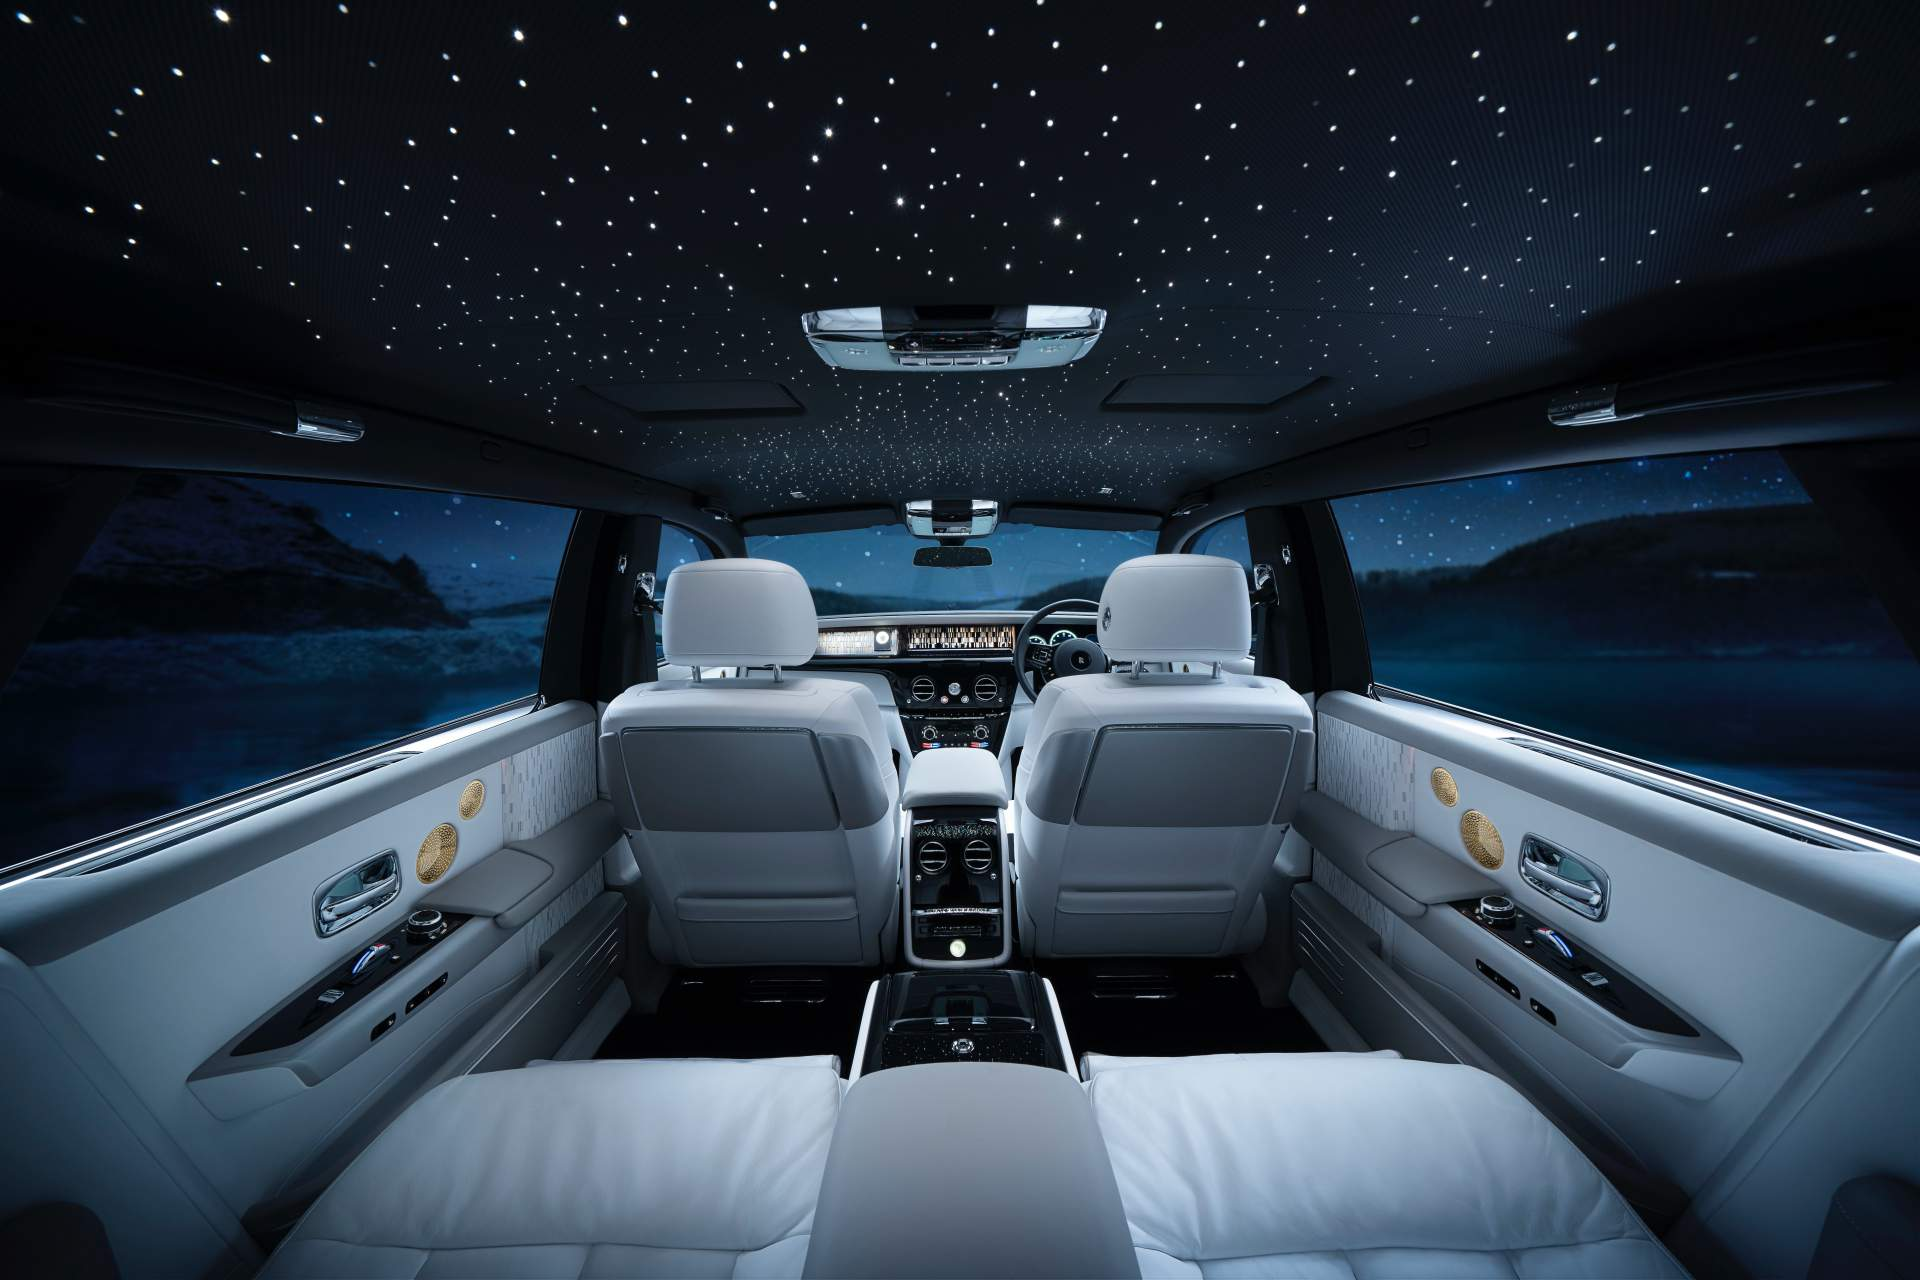 2019 Rolls Royce Phantom Tranquillity Interior Wallpapers